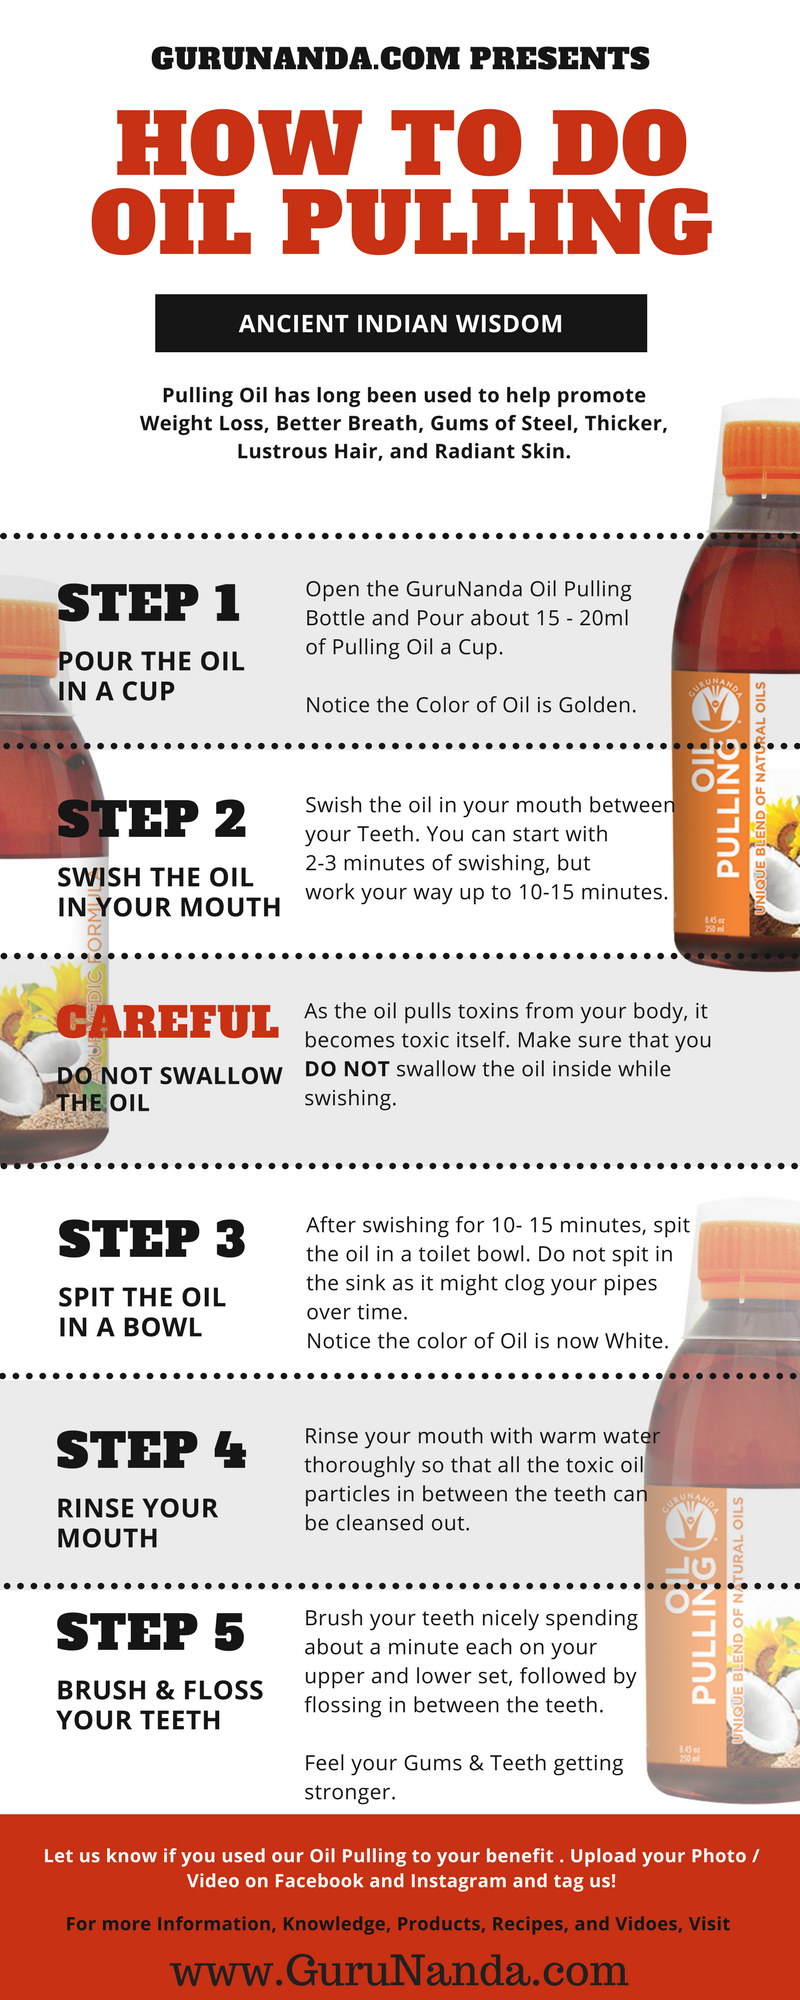 How to Do Oil Pulling forecasting